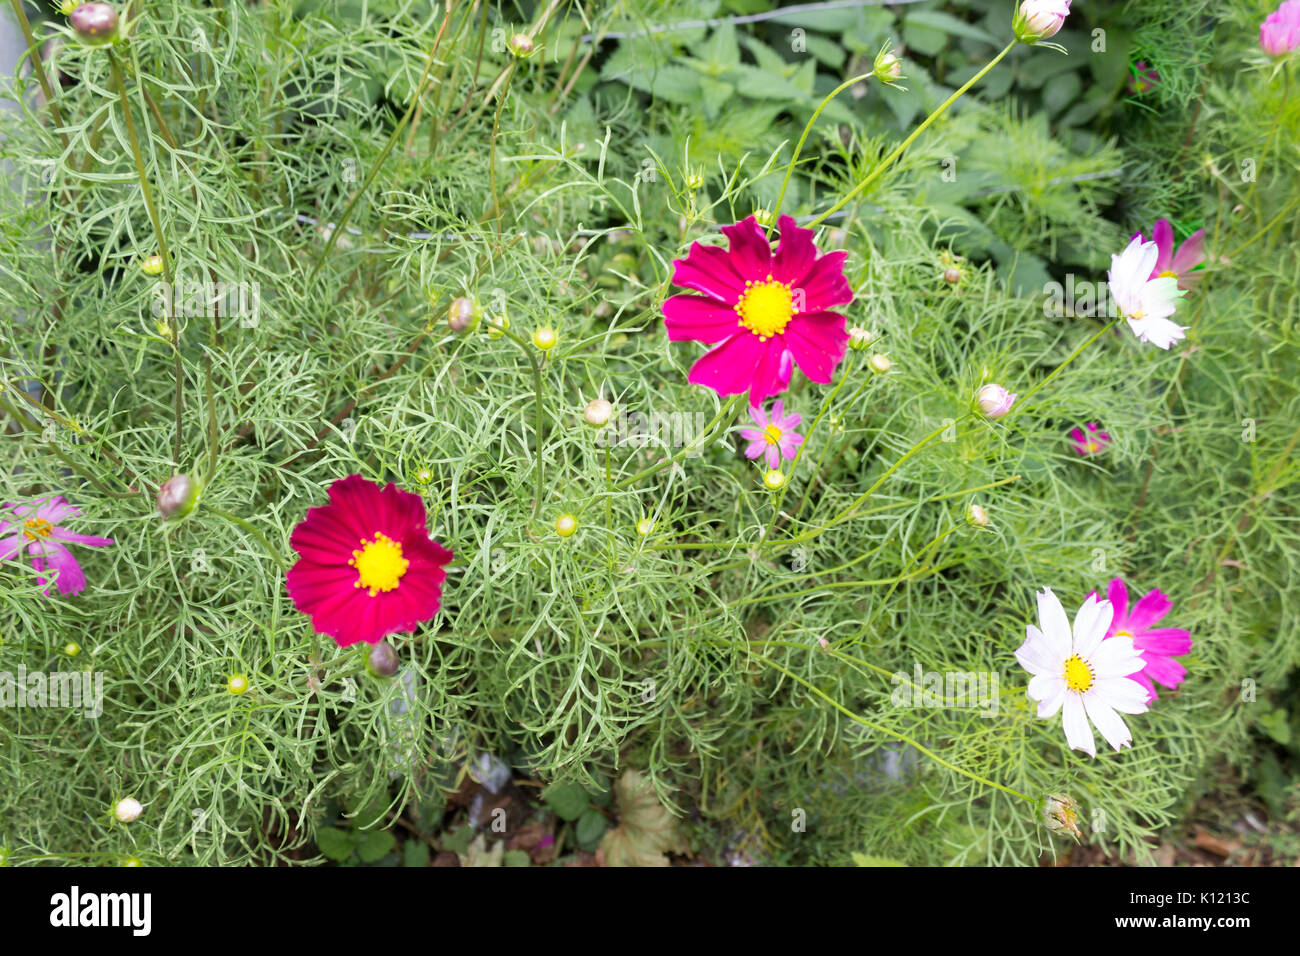 Bright red Cosmos flowers with eight petals and a yellow centre on a stem in full bloom in Summer in the garden with green leaves in the background. - Stock Image